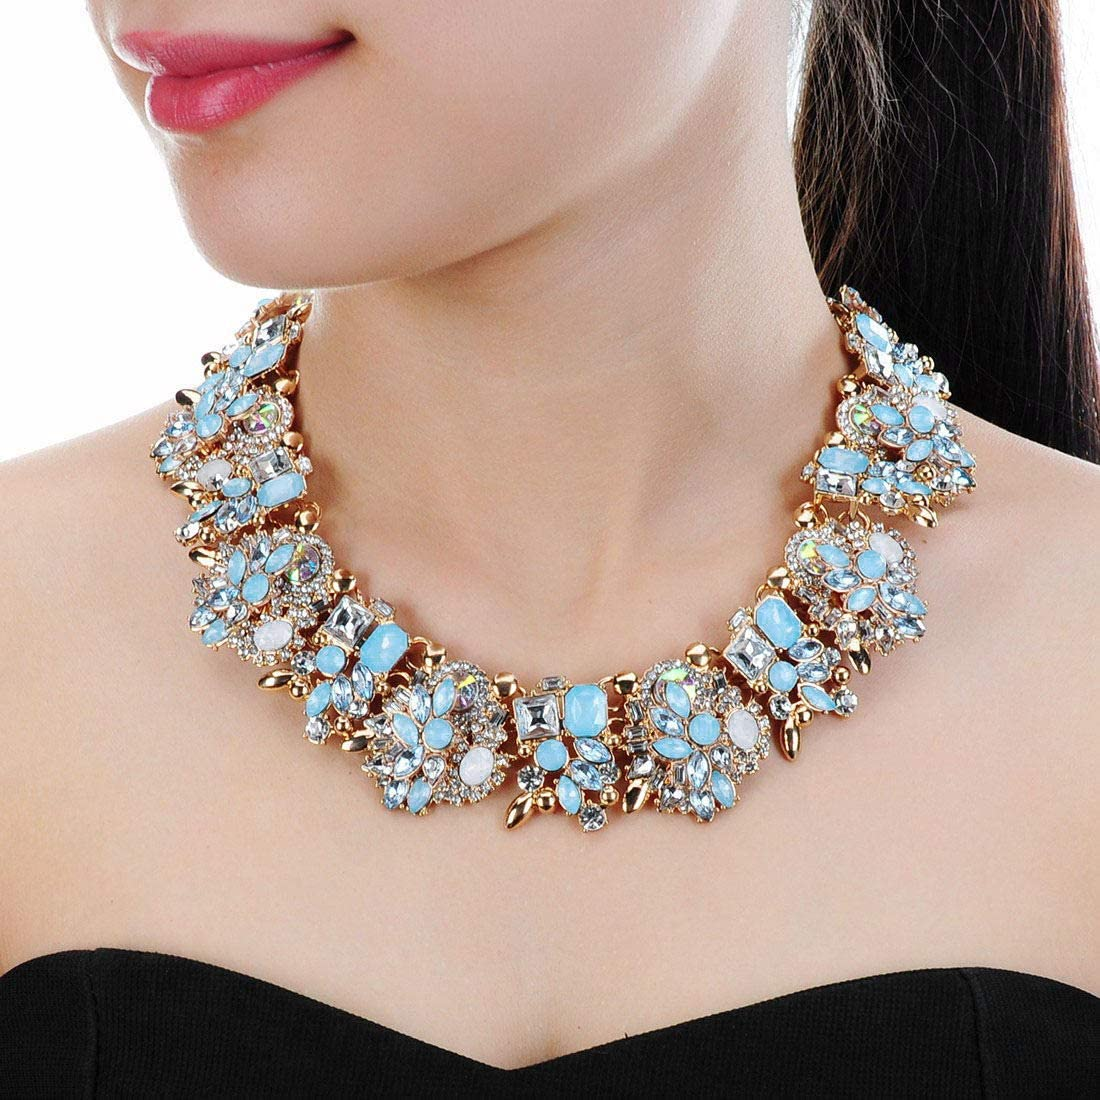 Crystal Rhinestone Statement Necklace, Vintage Chunky Chain Choker Collar Bib Statement Necklace Fashion Costume Jewelry Necklaces for Women…